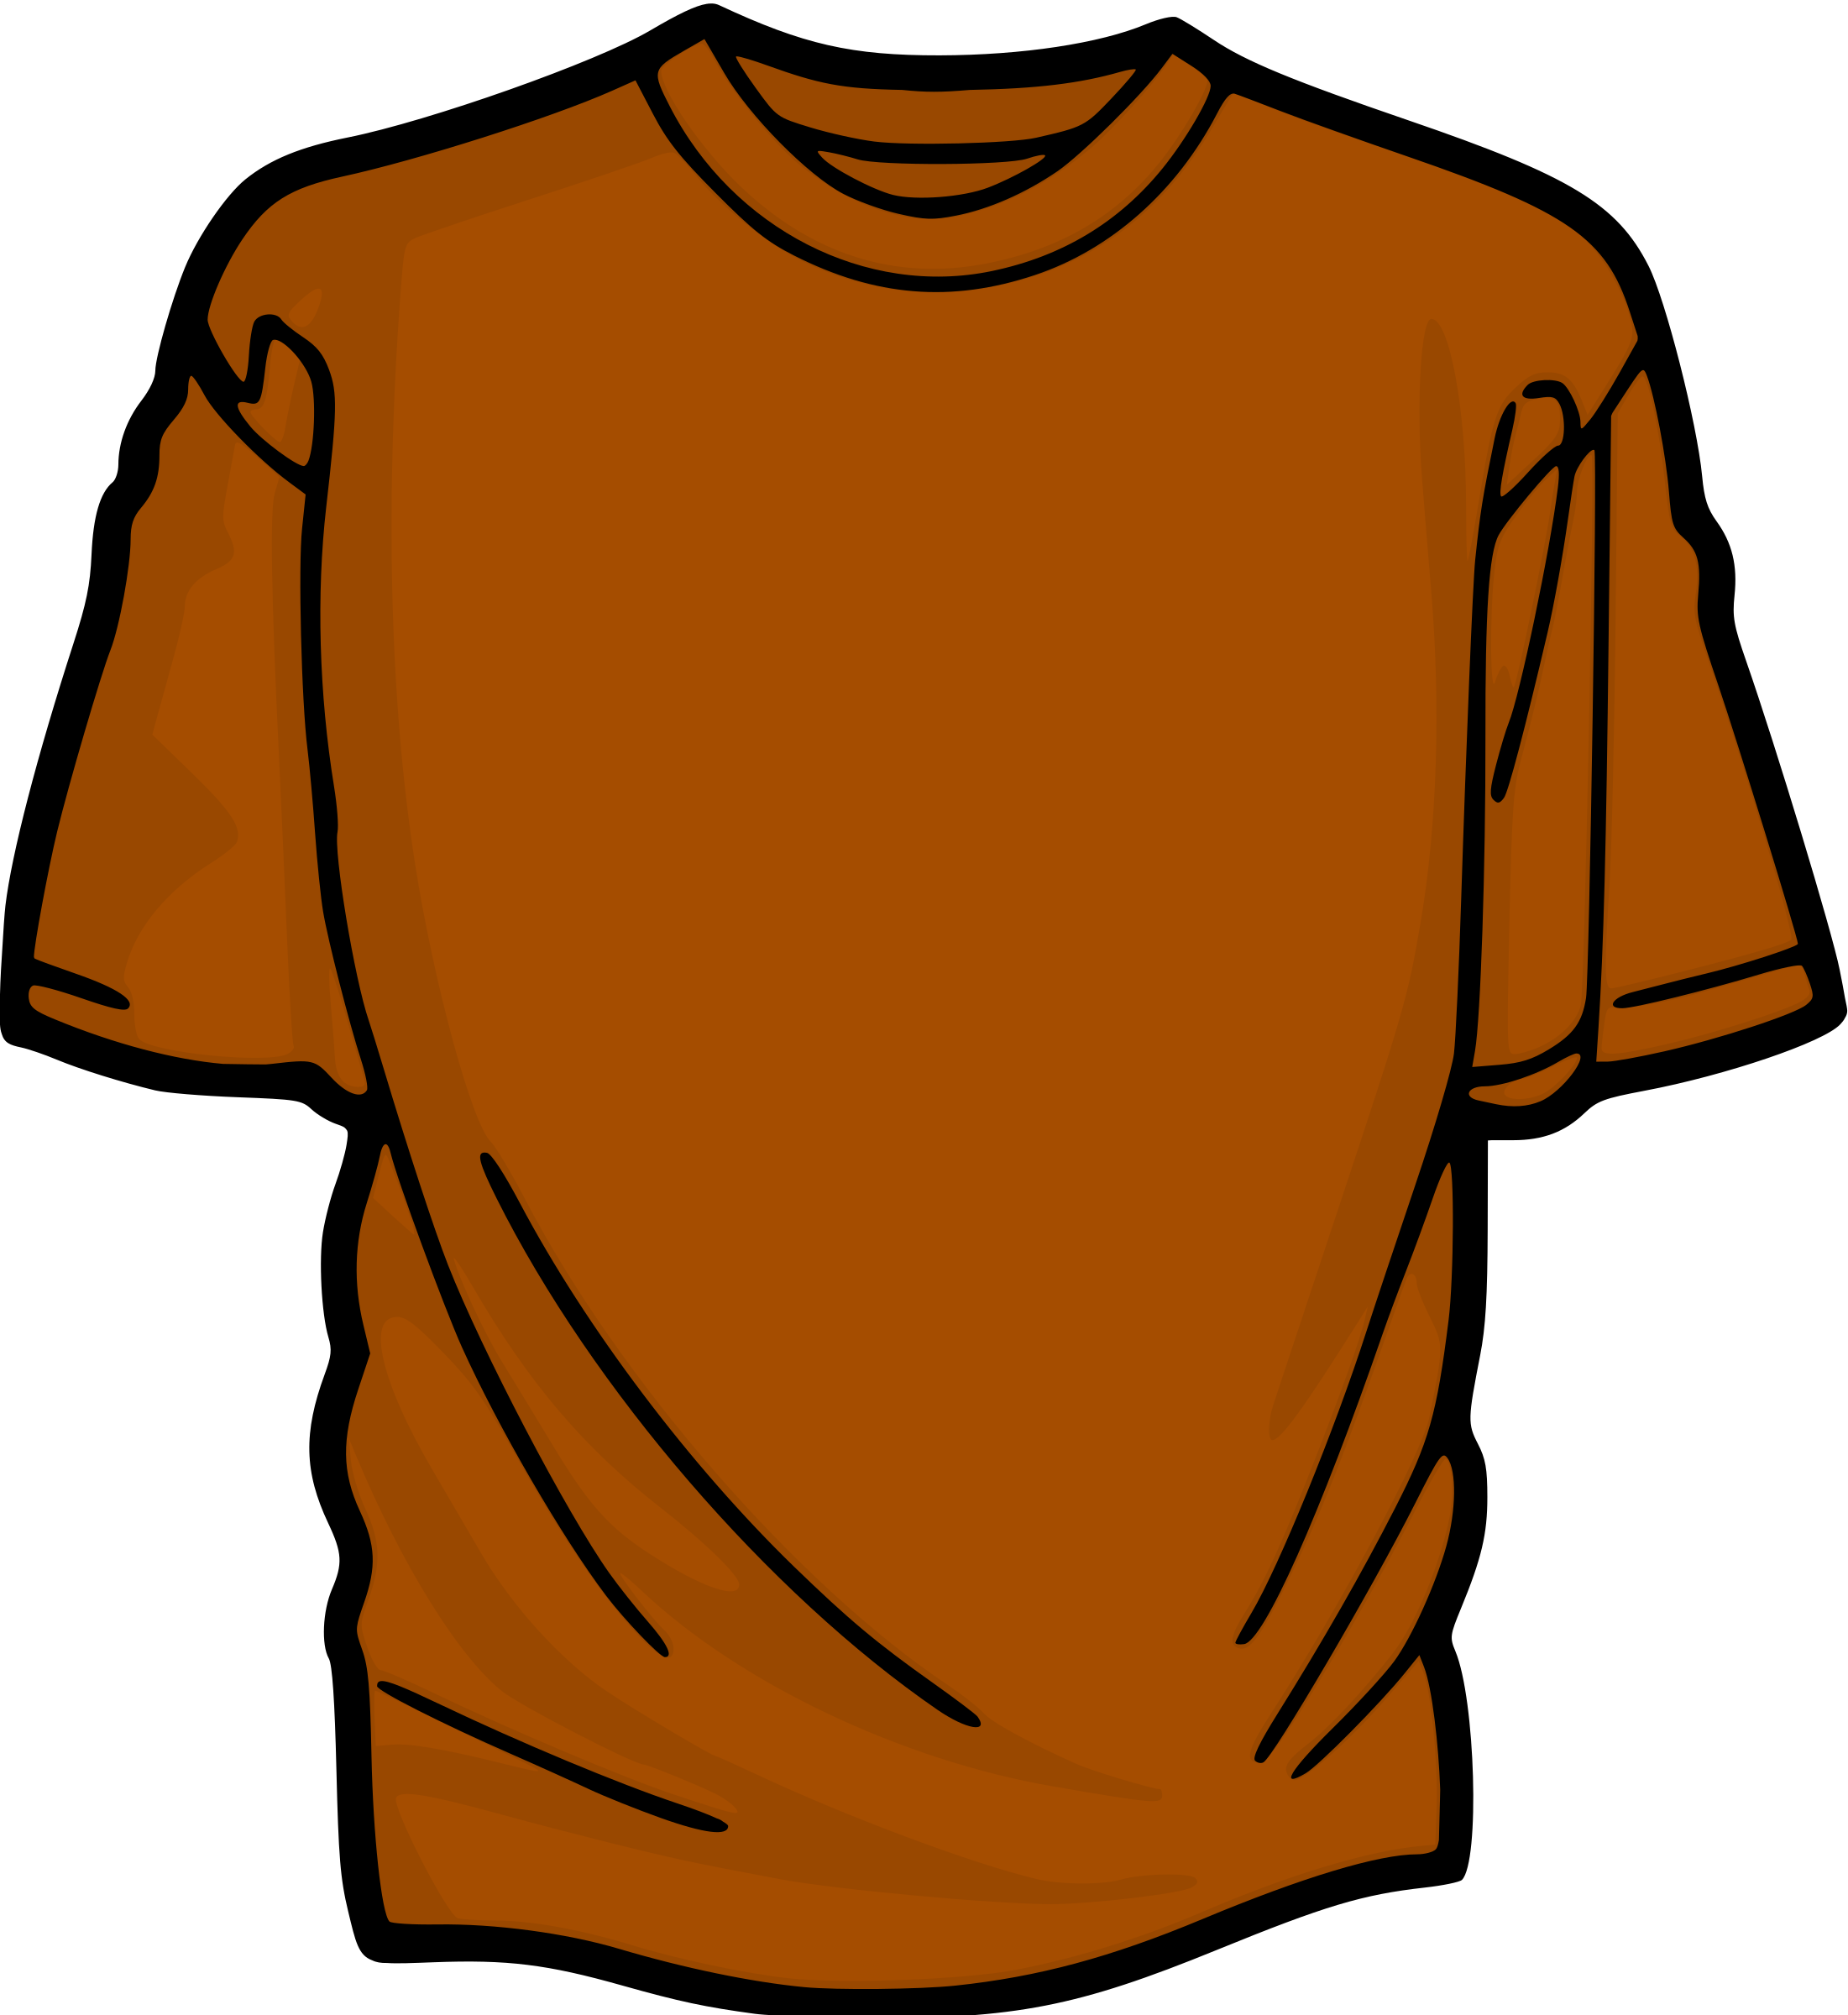 Jersey clipart orange. T shirt big image